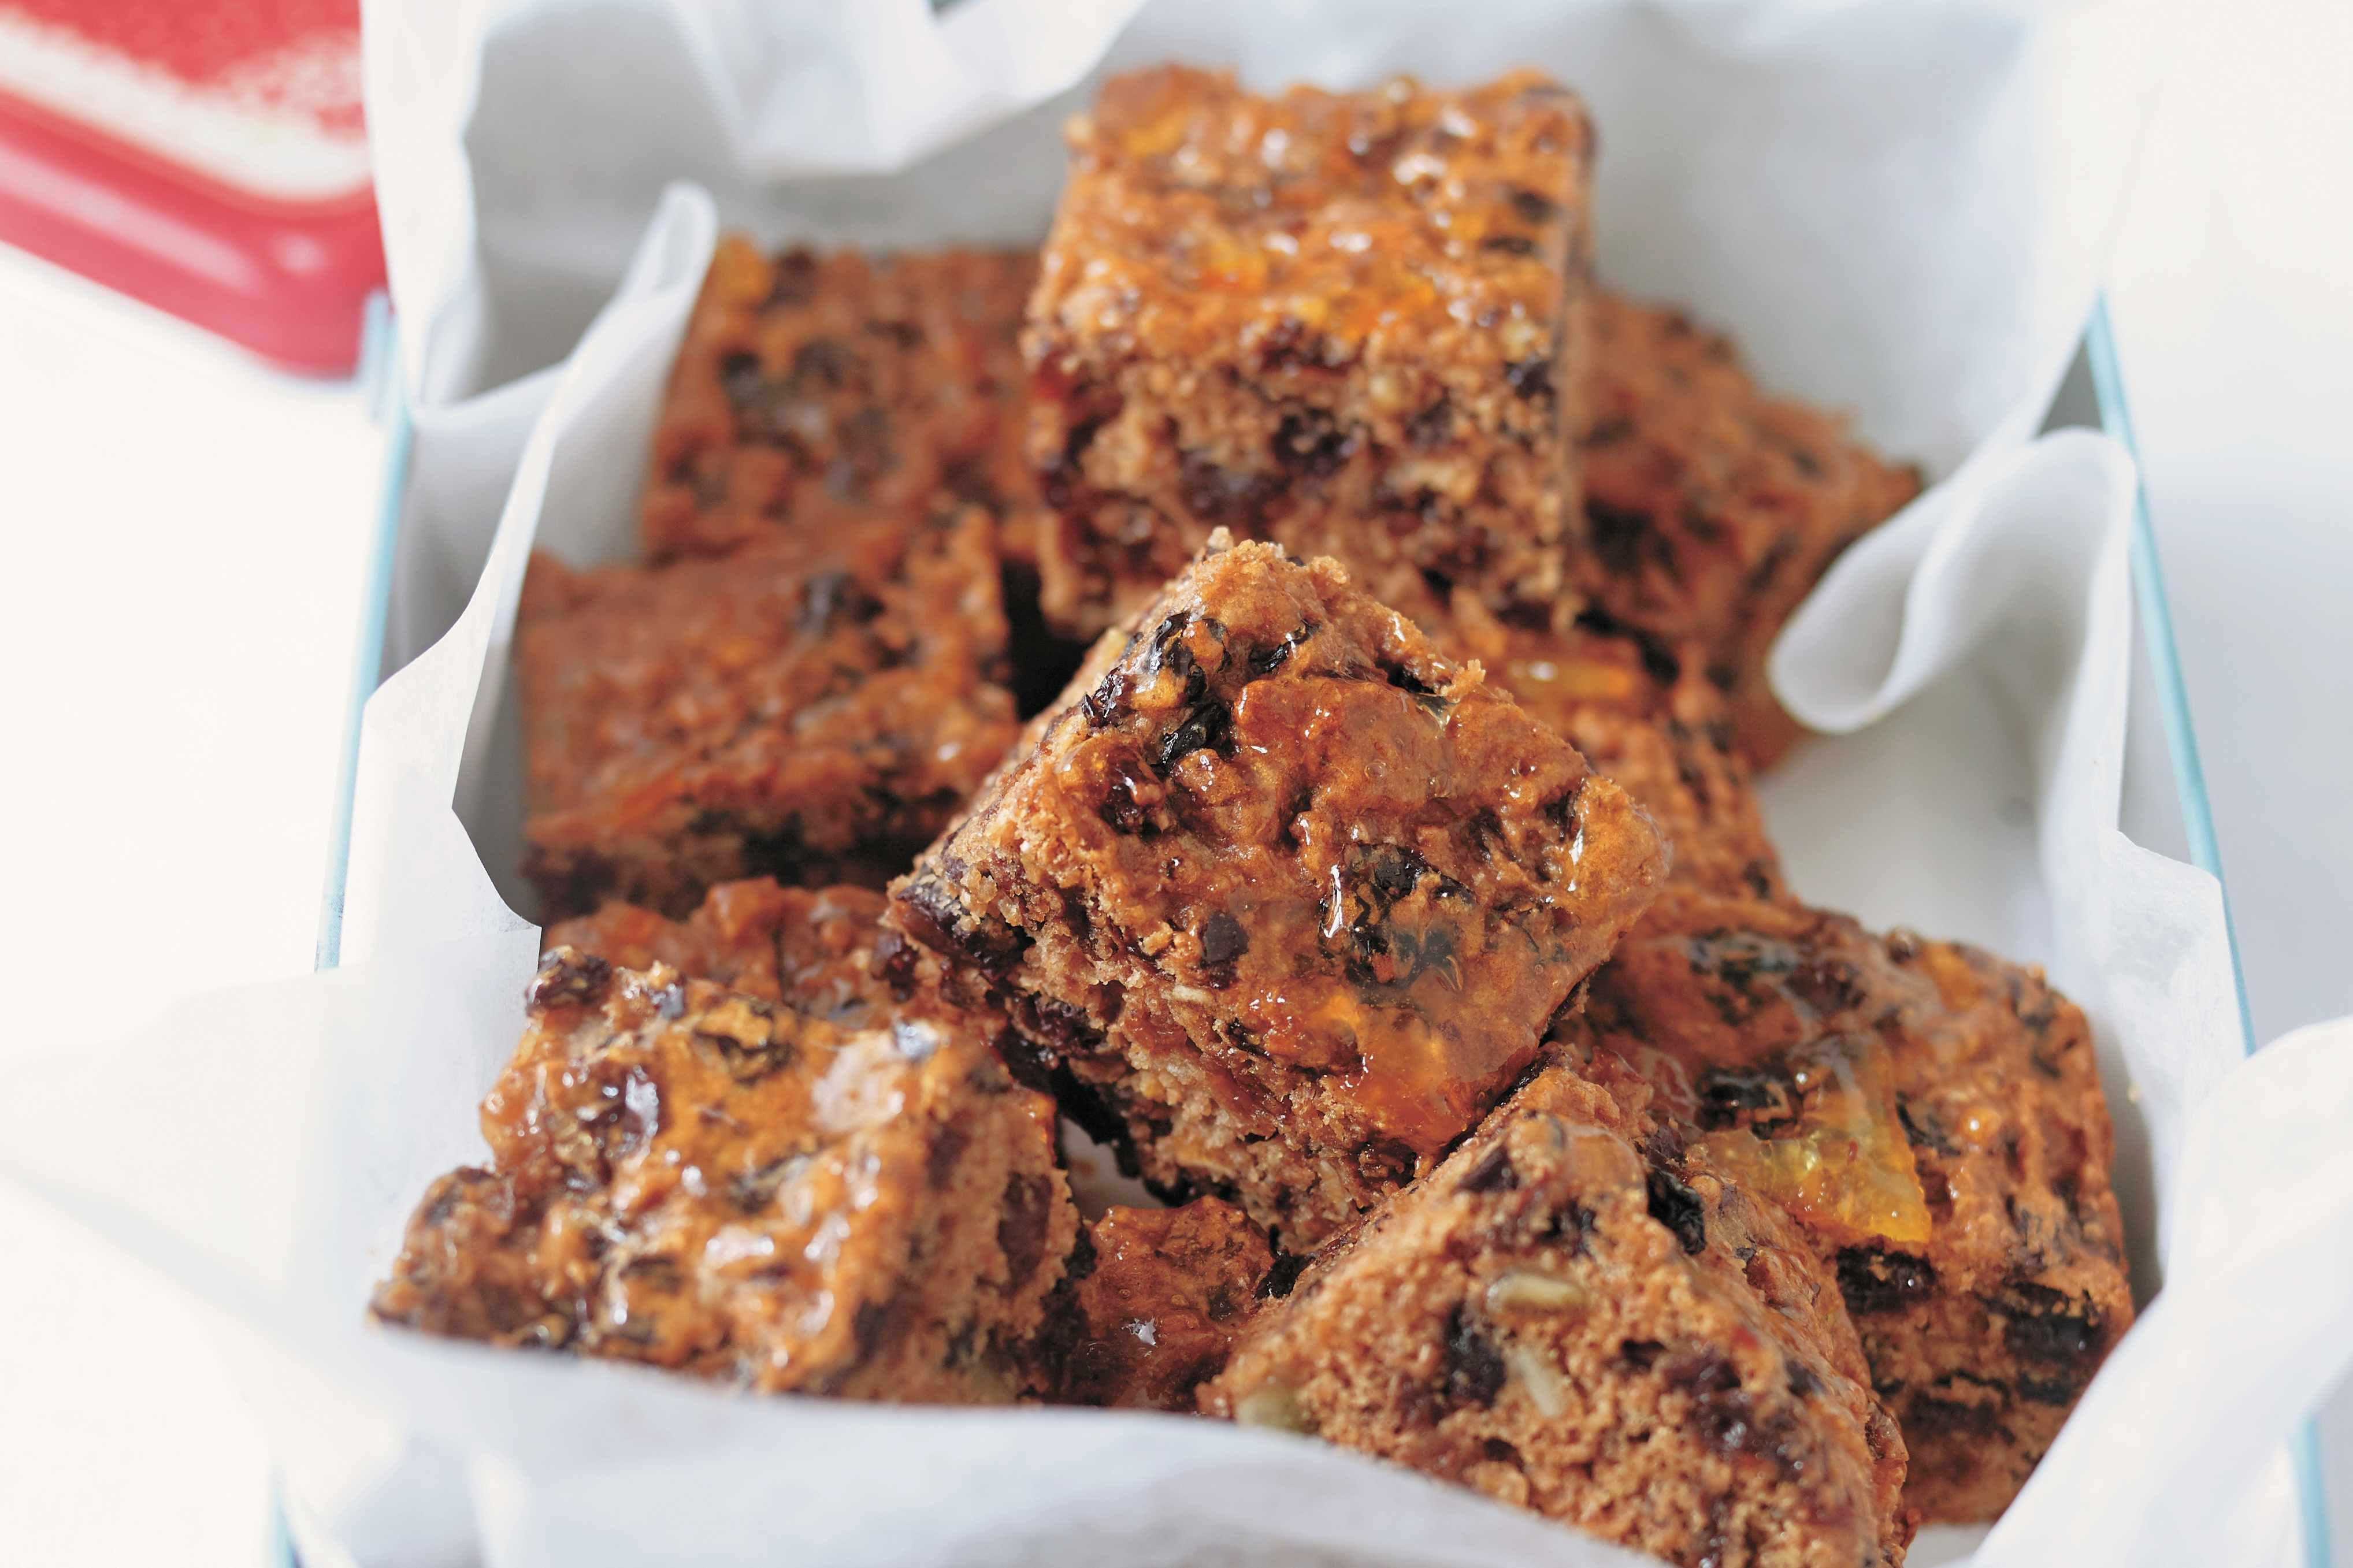 Green tea marmalde fruitcake squares, from Vegan Cookbook by Tony and Yvonne Bishop-Weston